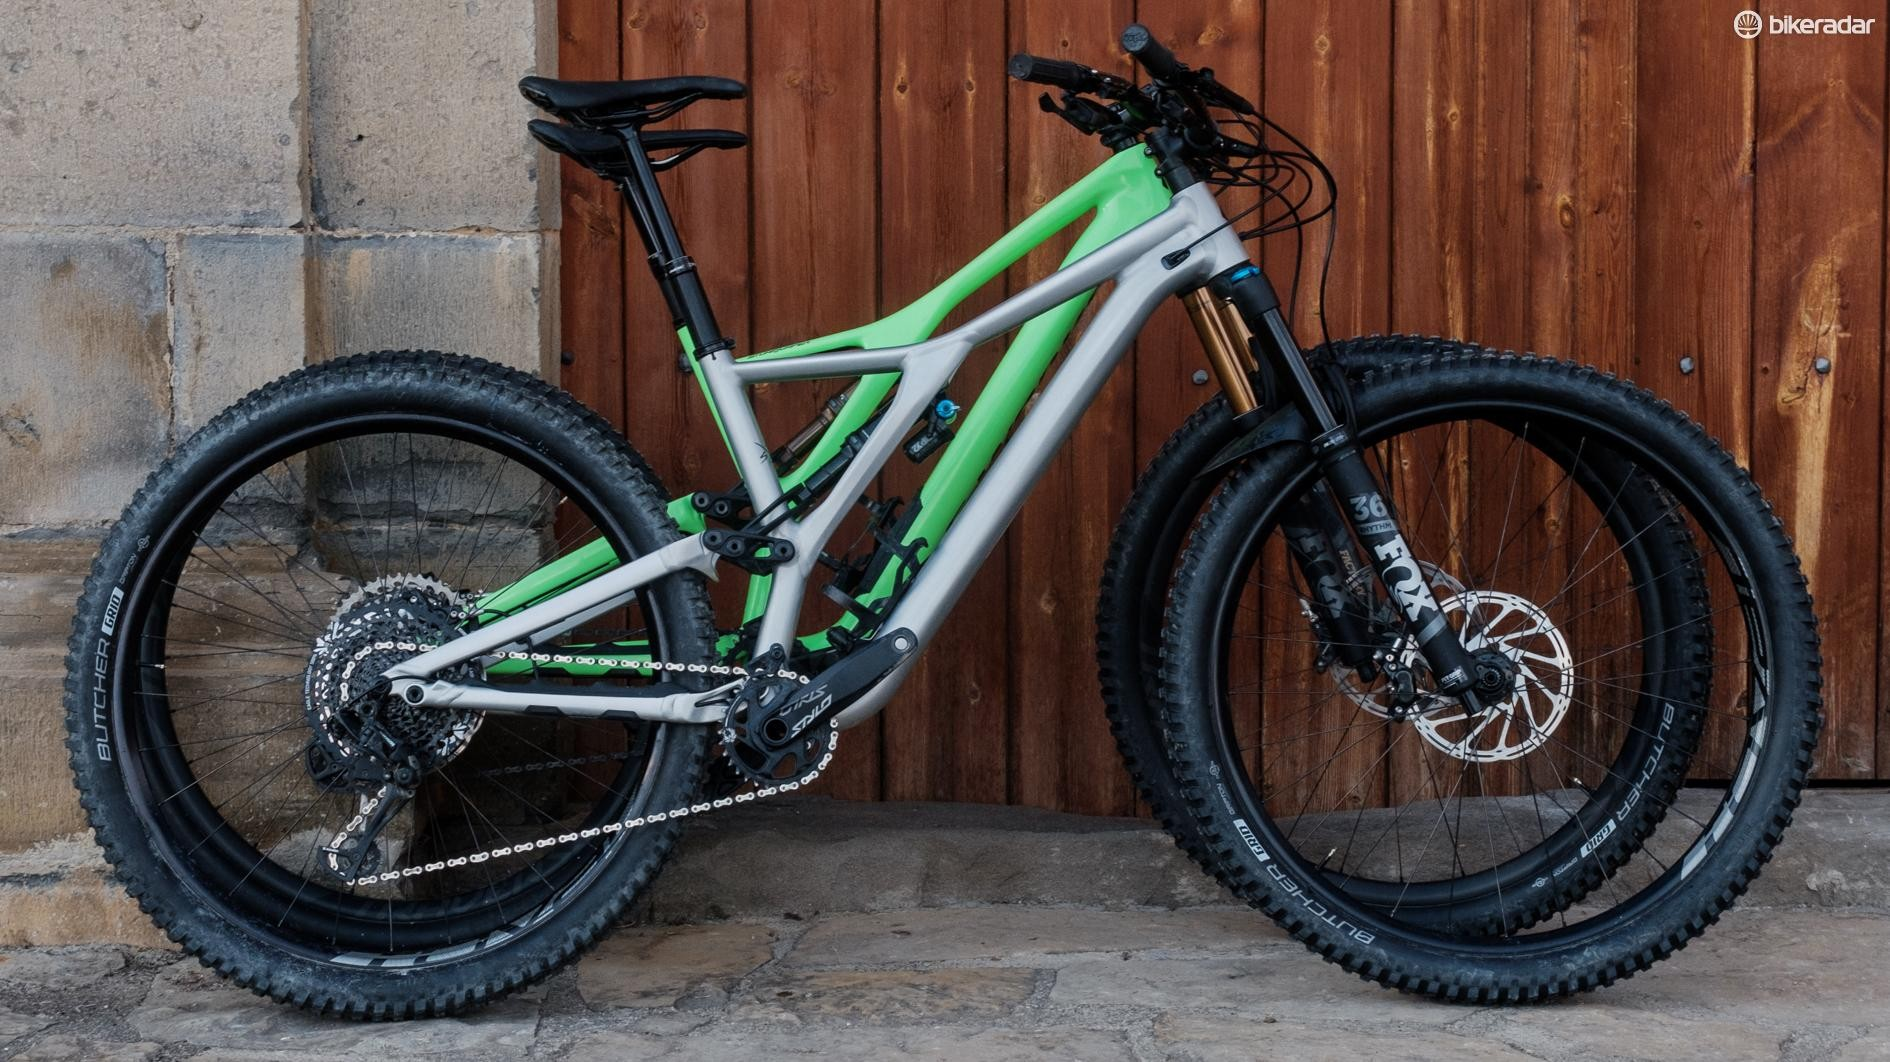 New Specialized Stumpjumper: range overview, design notes and